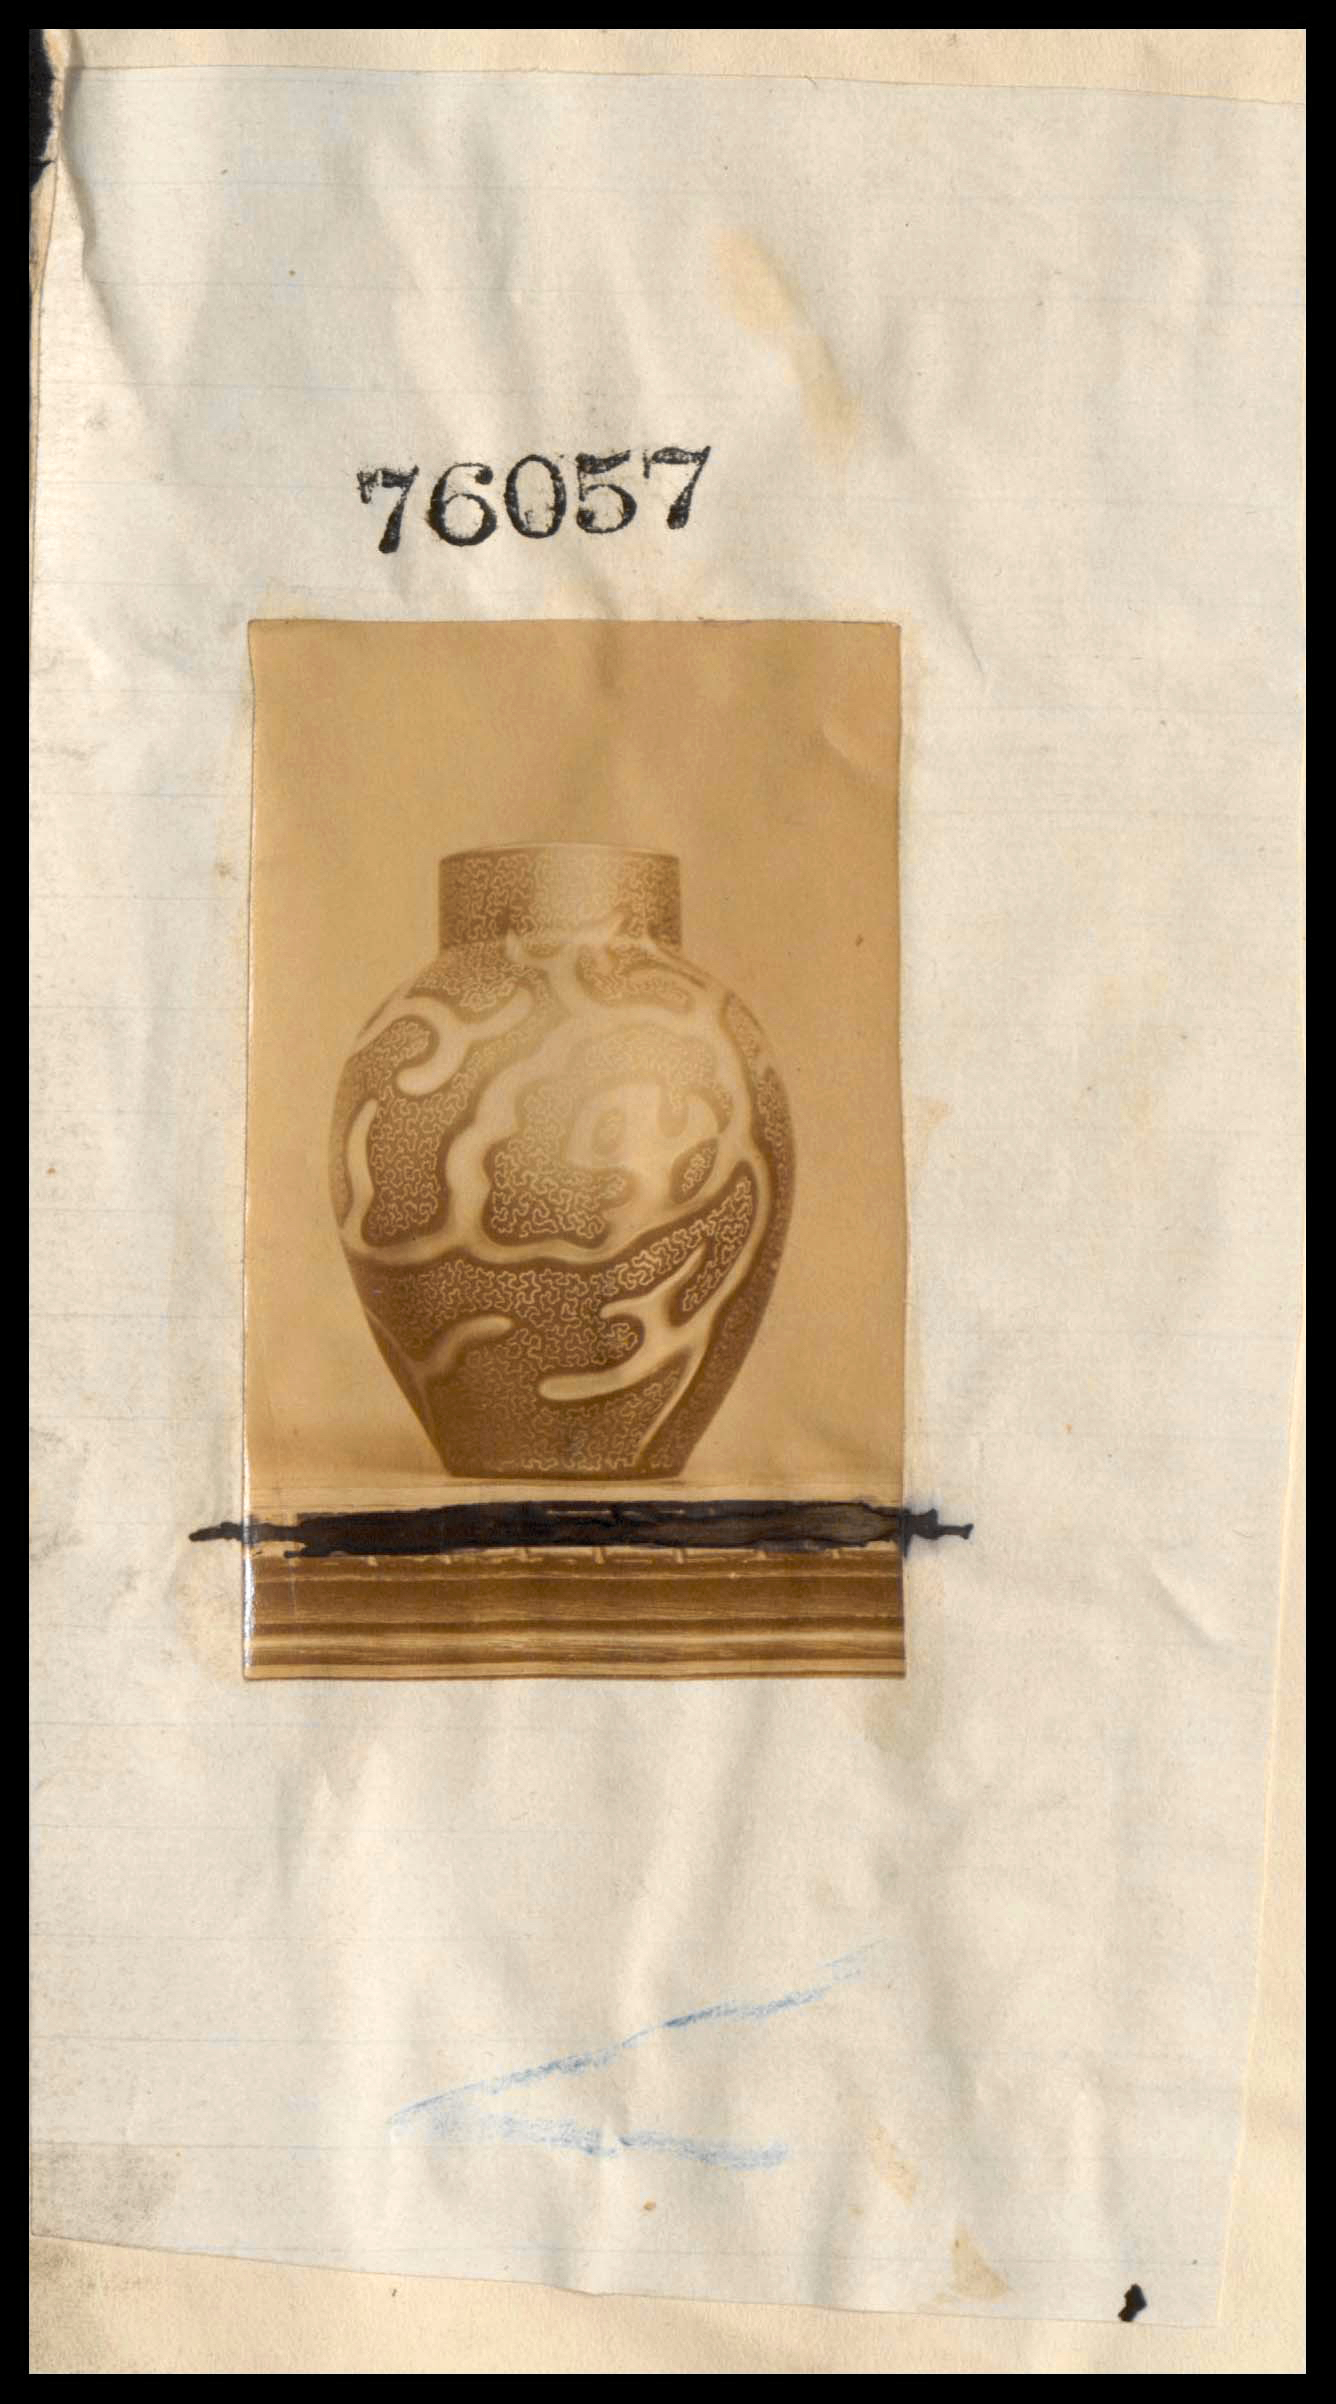 Registry document for 76057 showing photo of Octopus vase